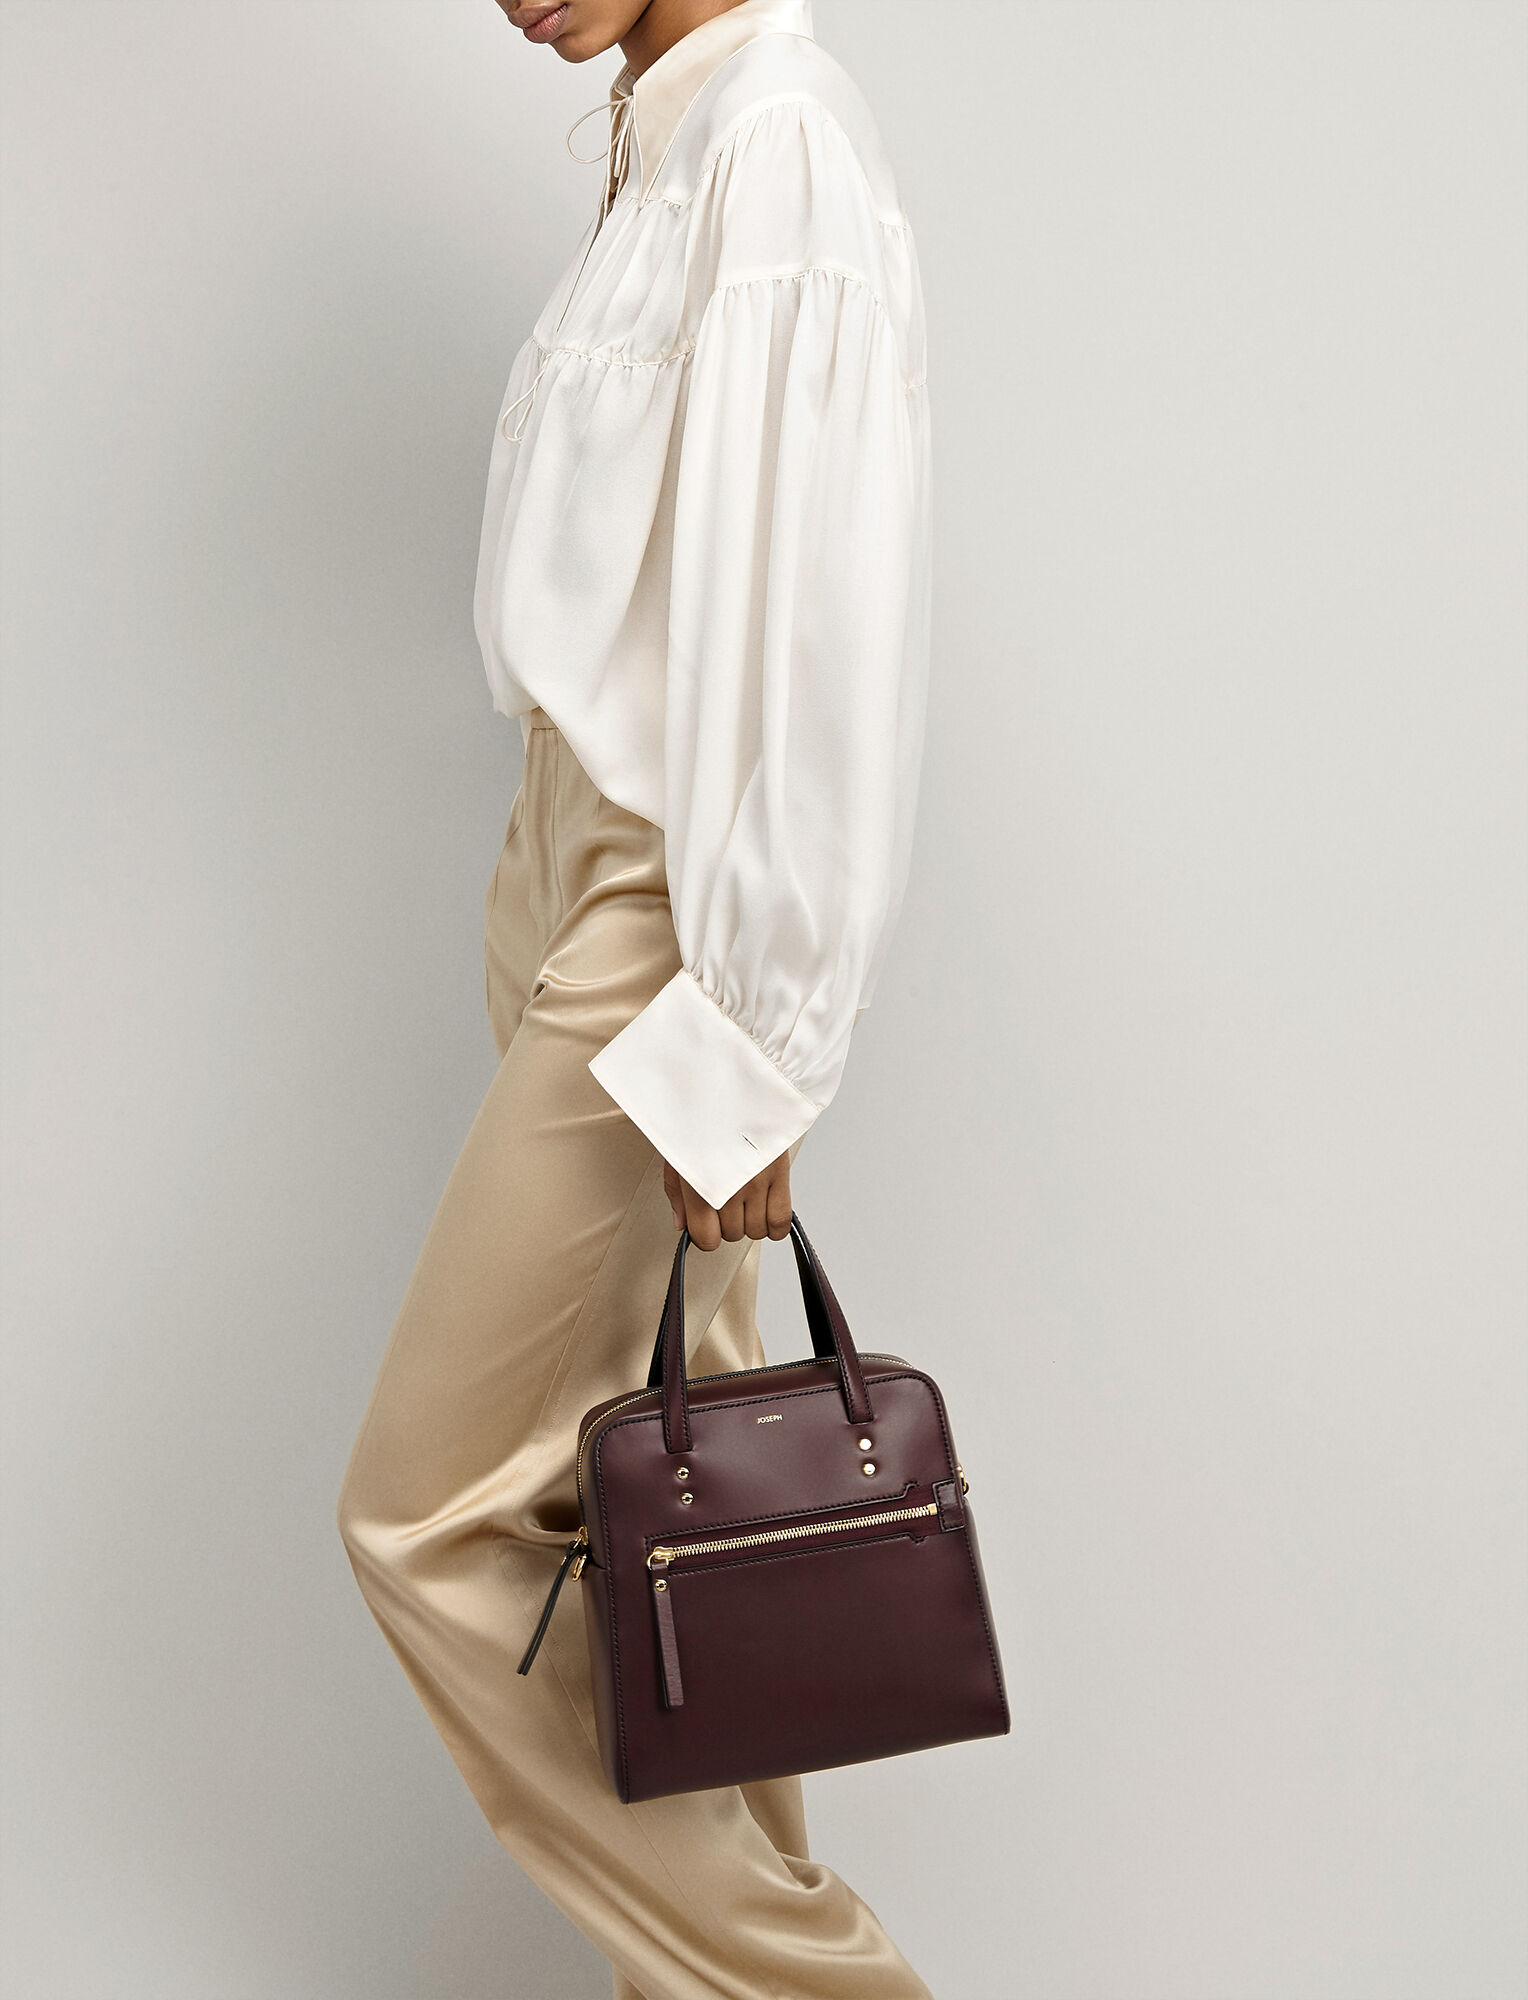 Joseph, Leather Ryder 25 Bag, in MORGON